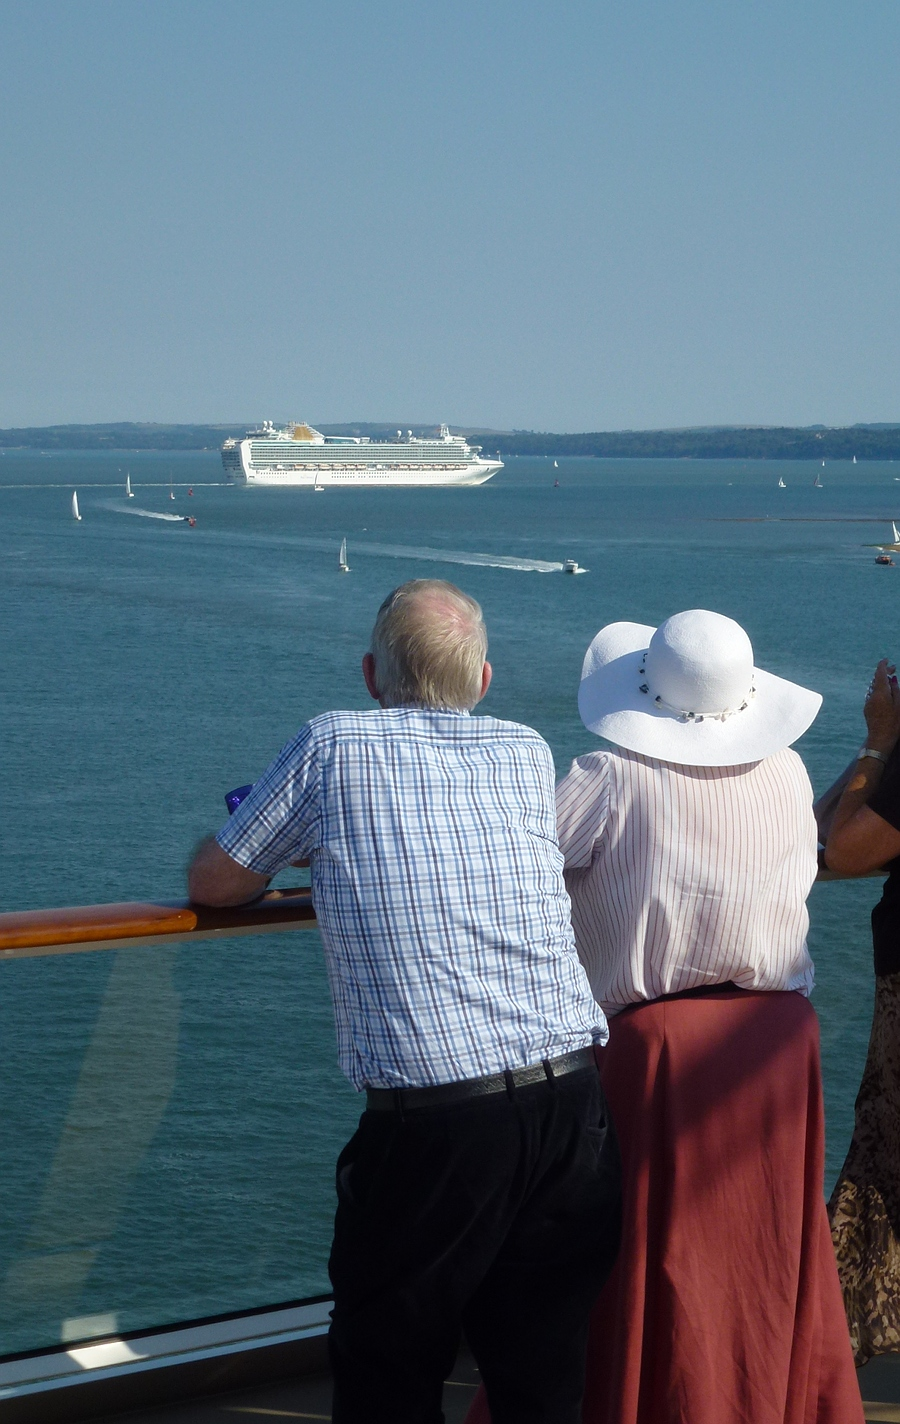 Watching other boats off Cowes